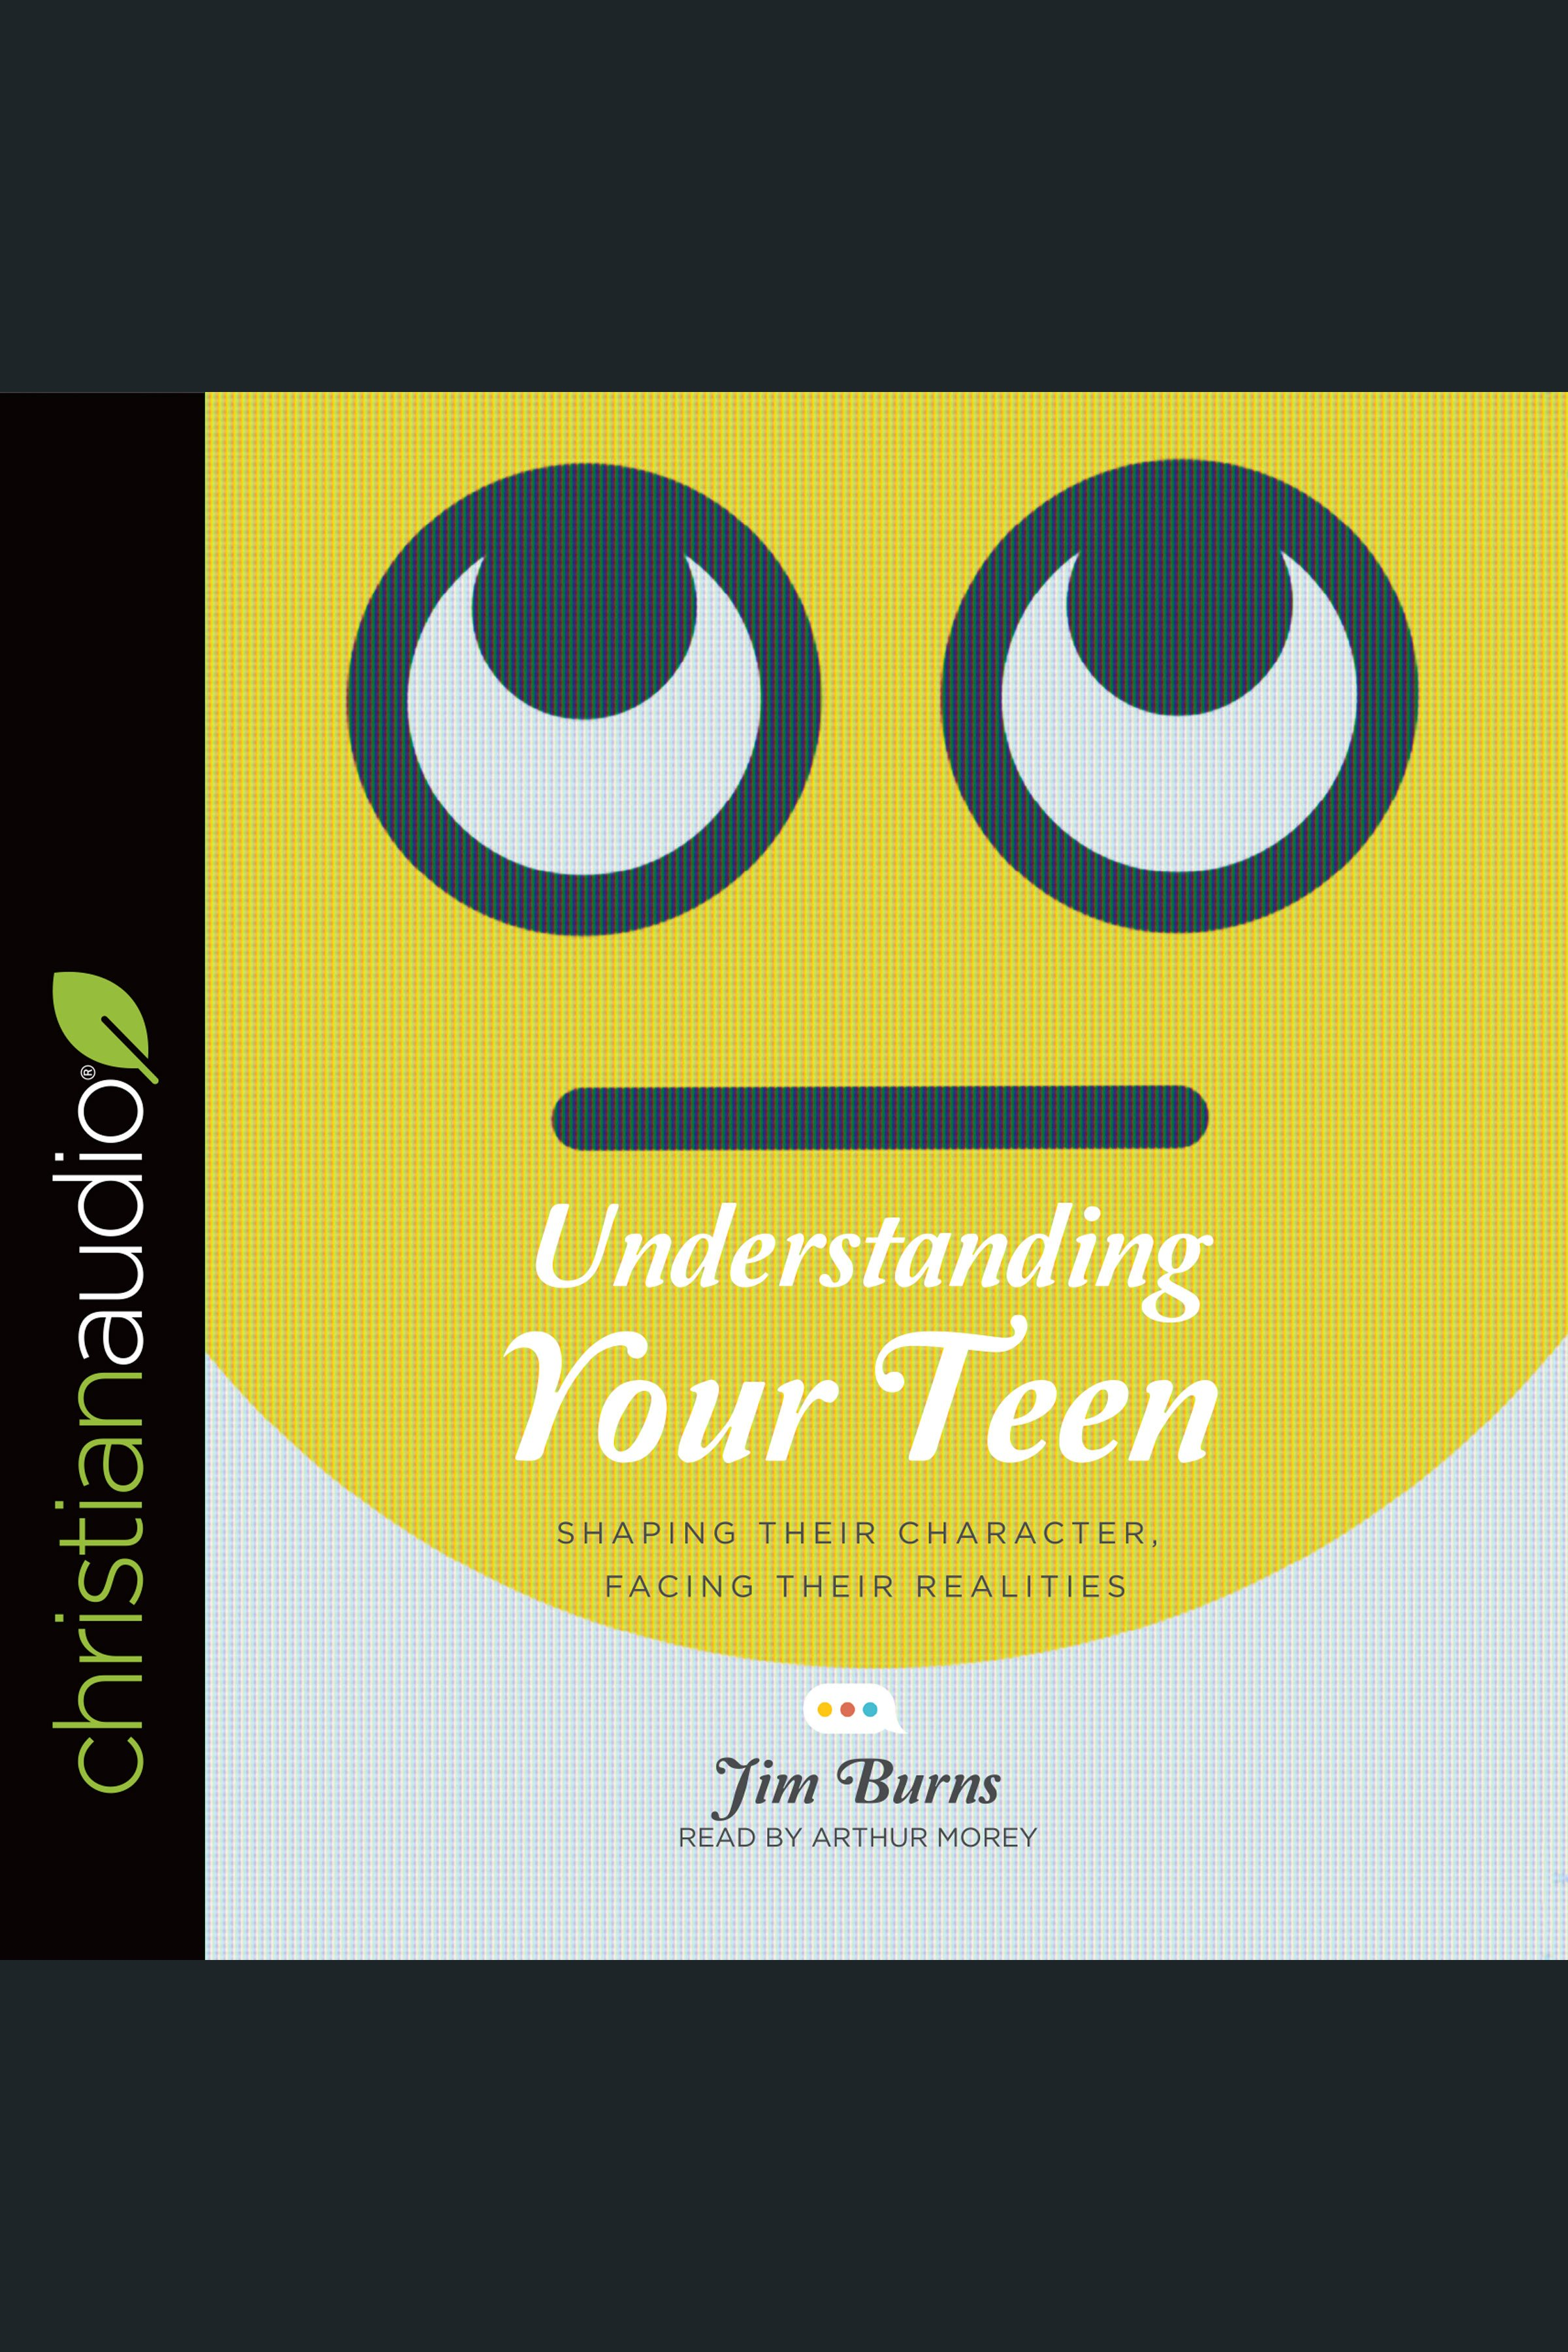 Understanding your teen cover image